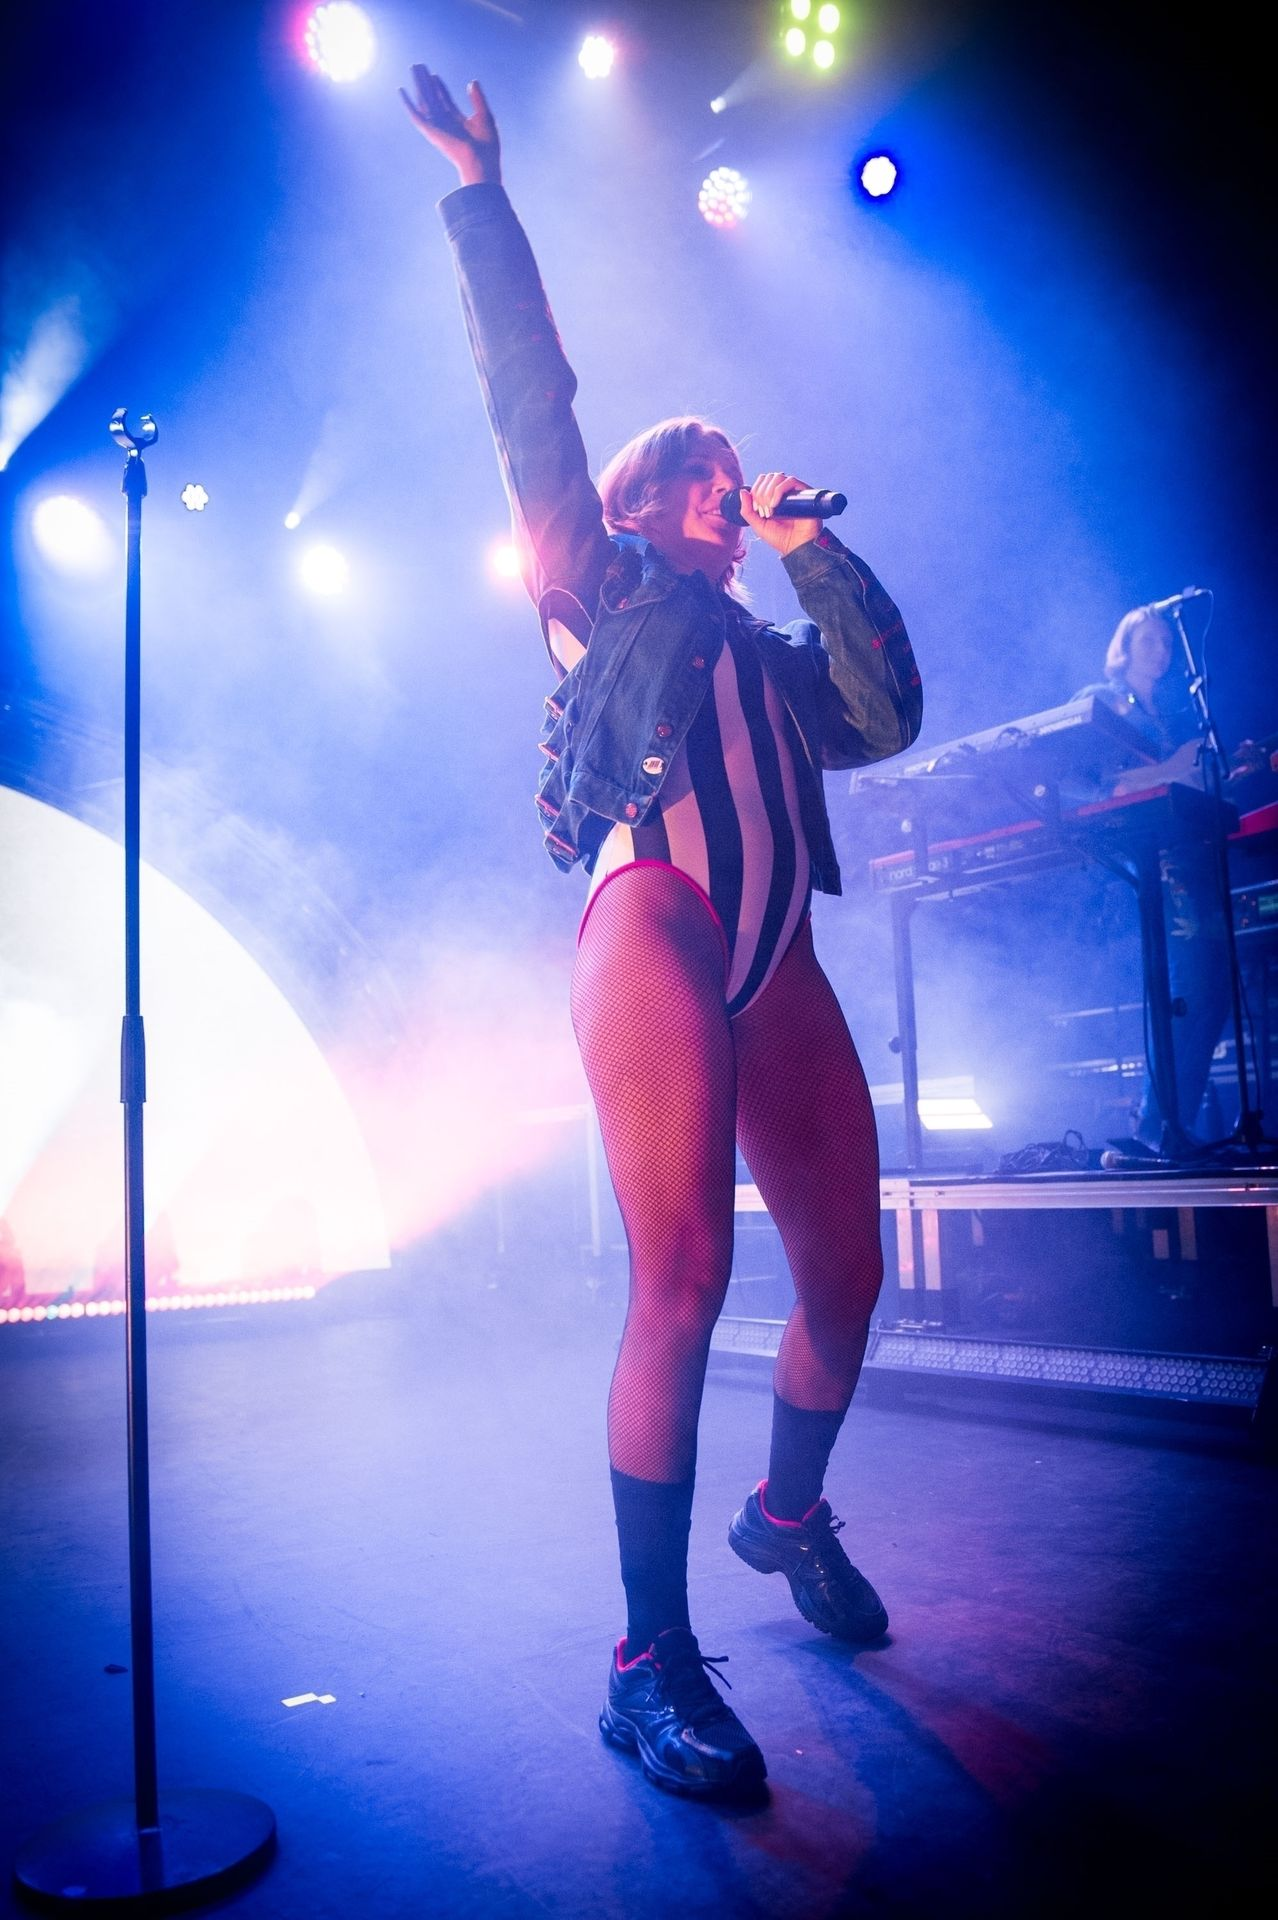 Tove Lo Is In Concert Performing Live At O2 Forum Kentish Town In London 0038